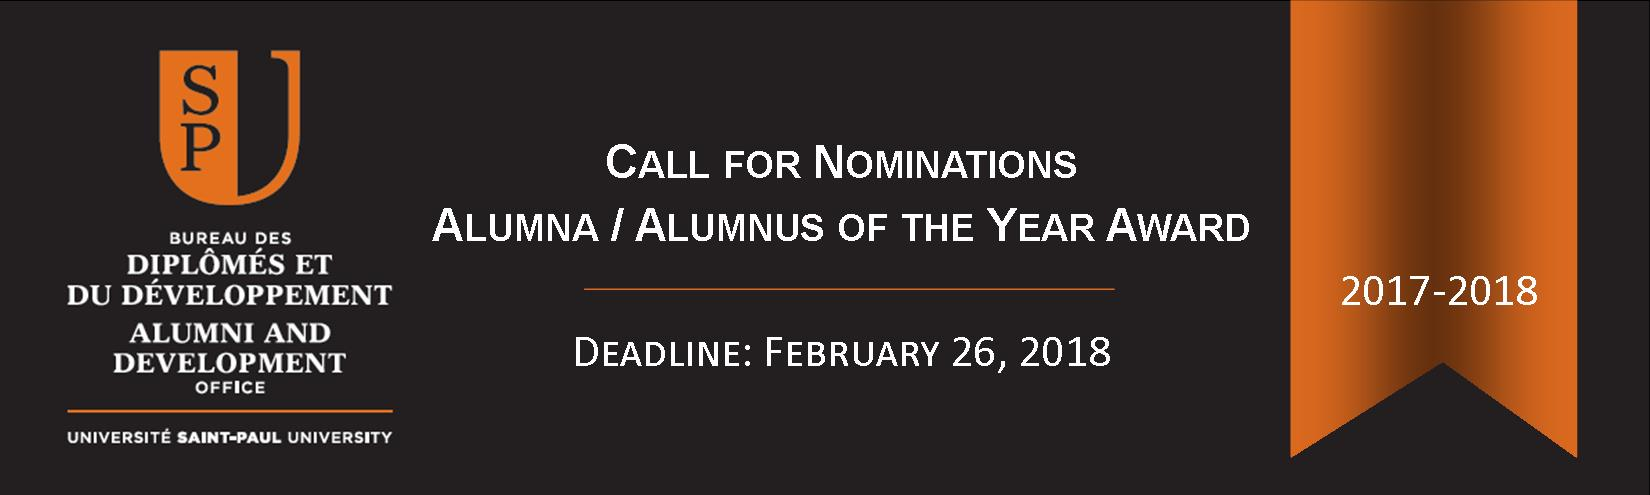 Call for Nominations  2017-2018 Alumna / Alumnus of the Year Award